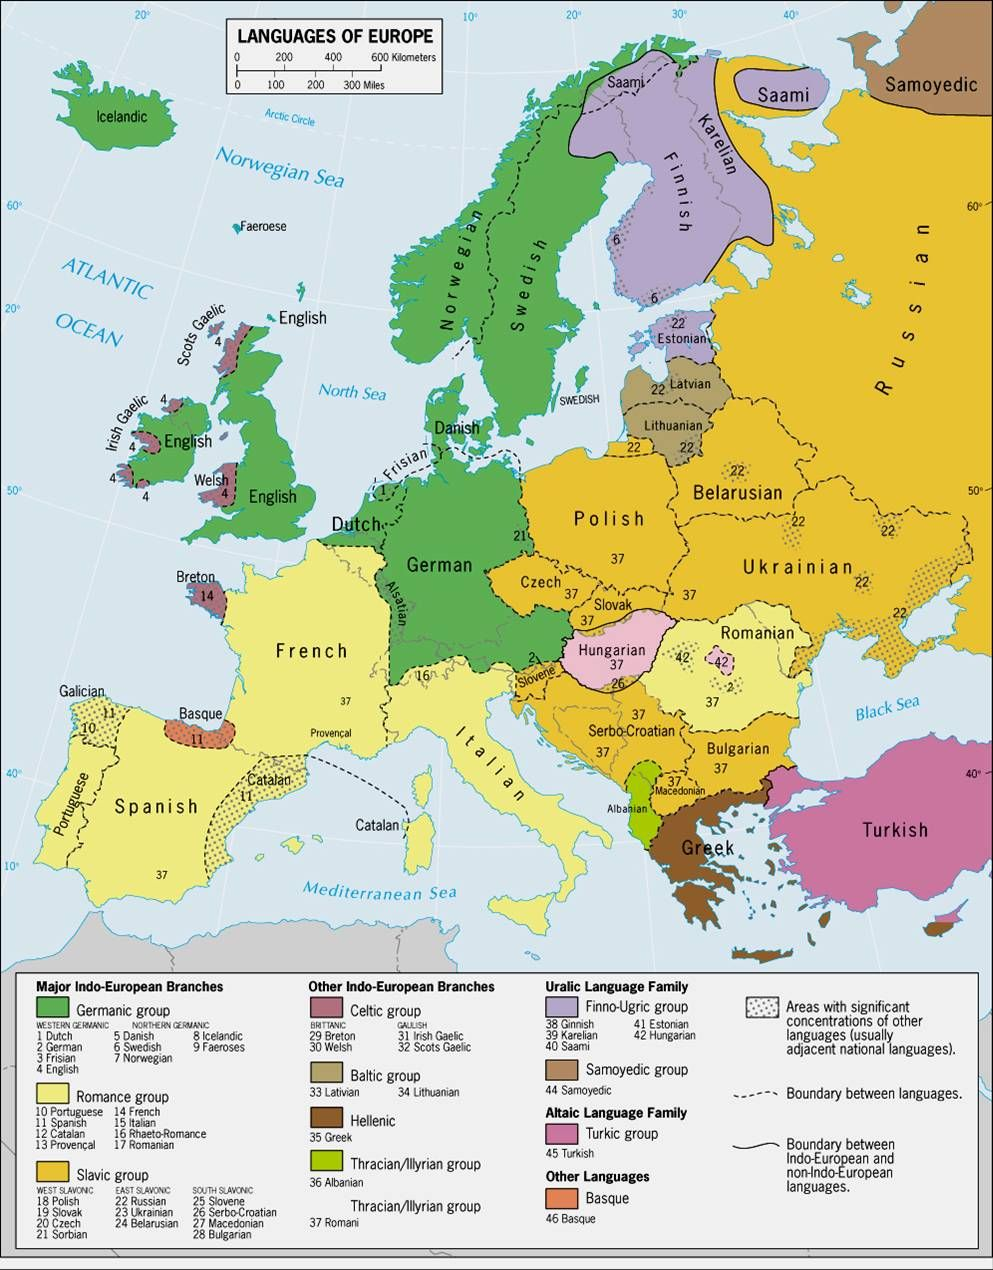 languages of europe classification by linguistic family source link